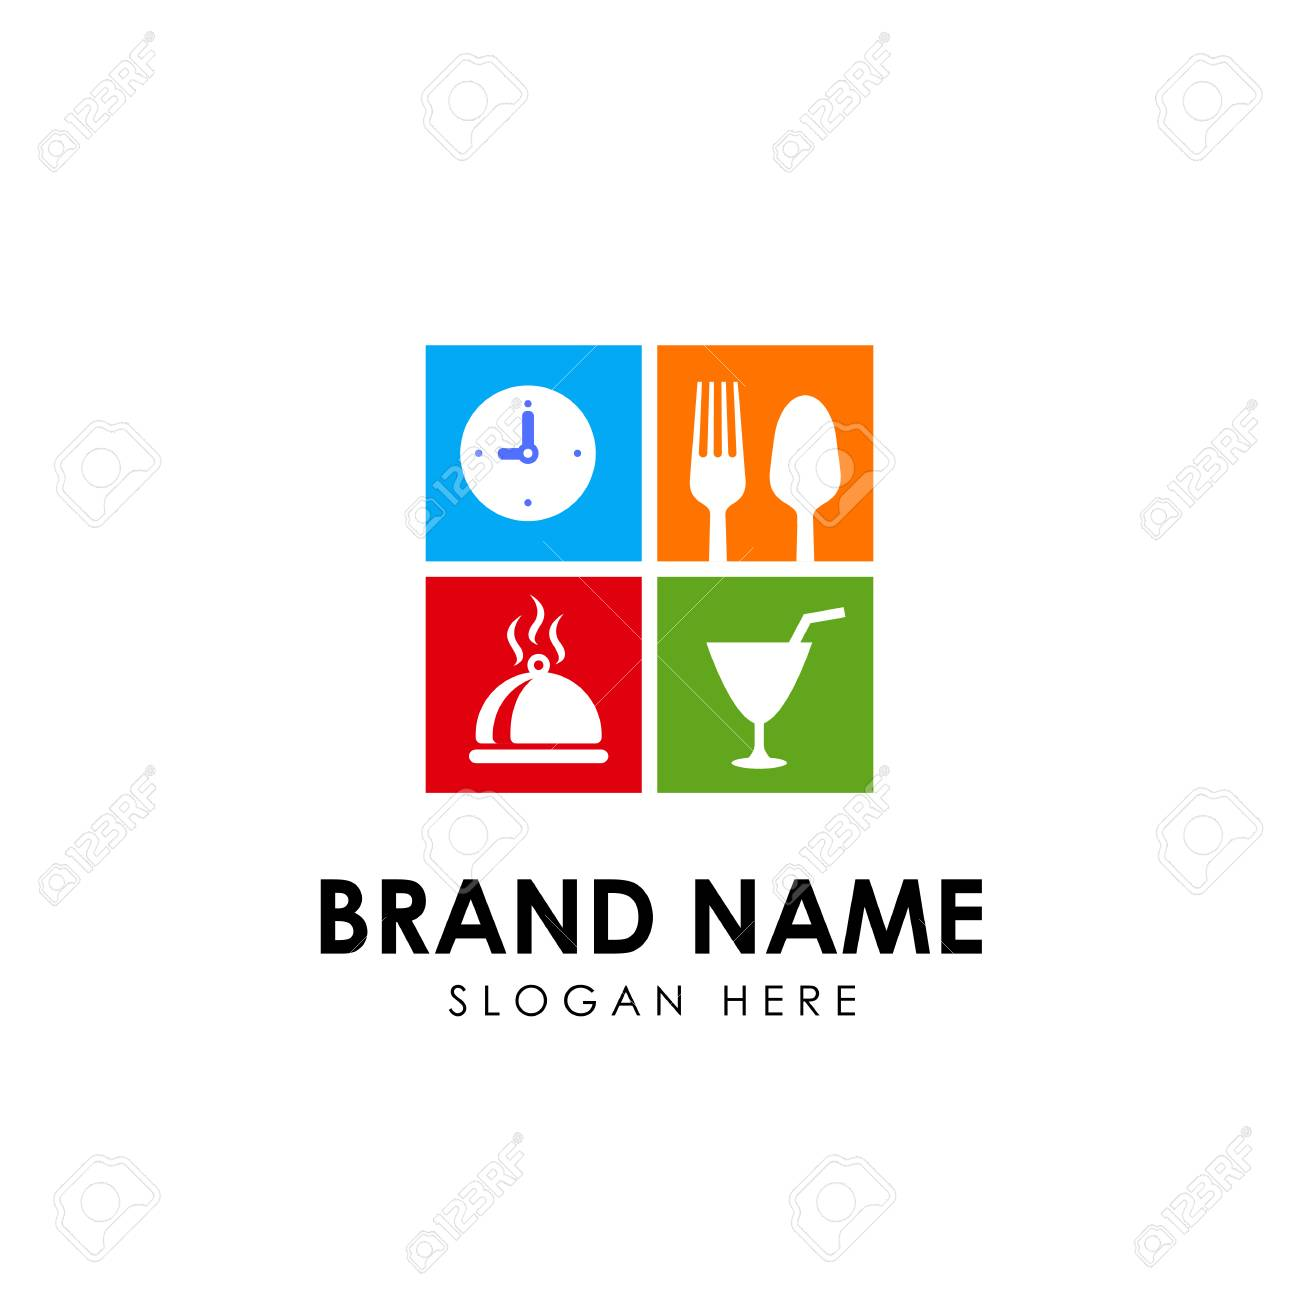 Restaurant Logo Design Template Restaurant Icon Sign Design Royalty Free Cliparts Vectors And Stock Illustration Image 117598077